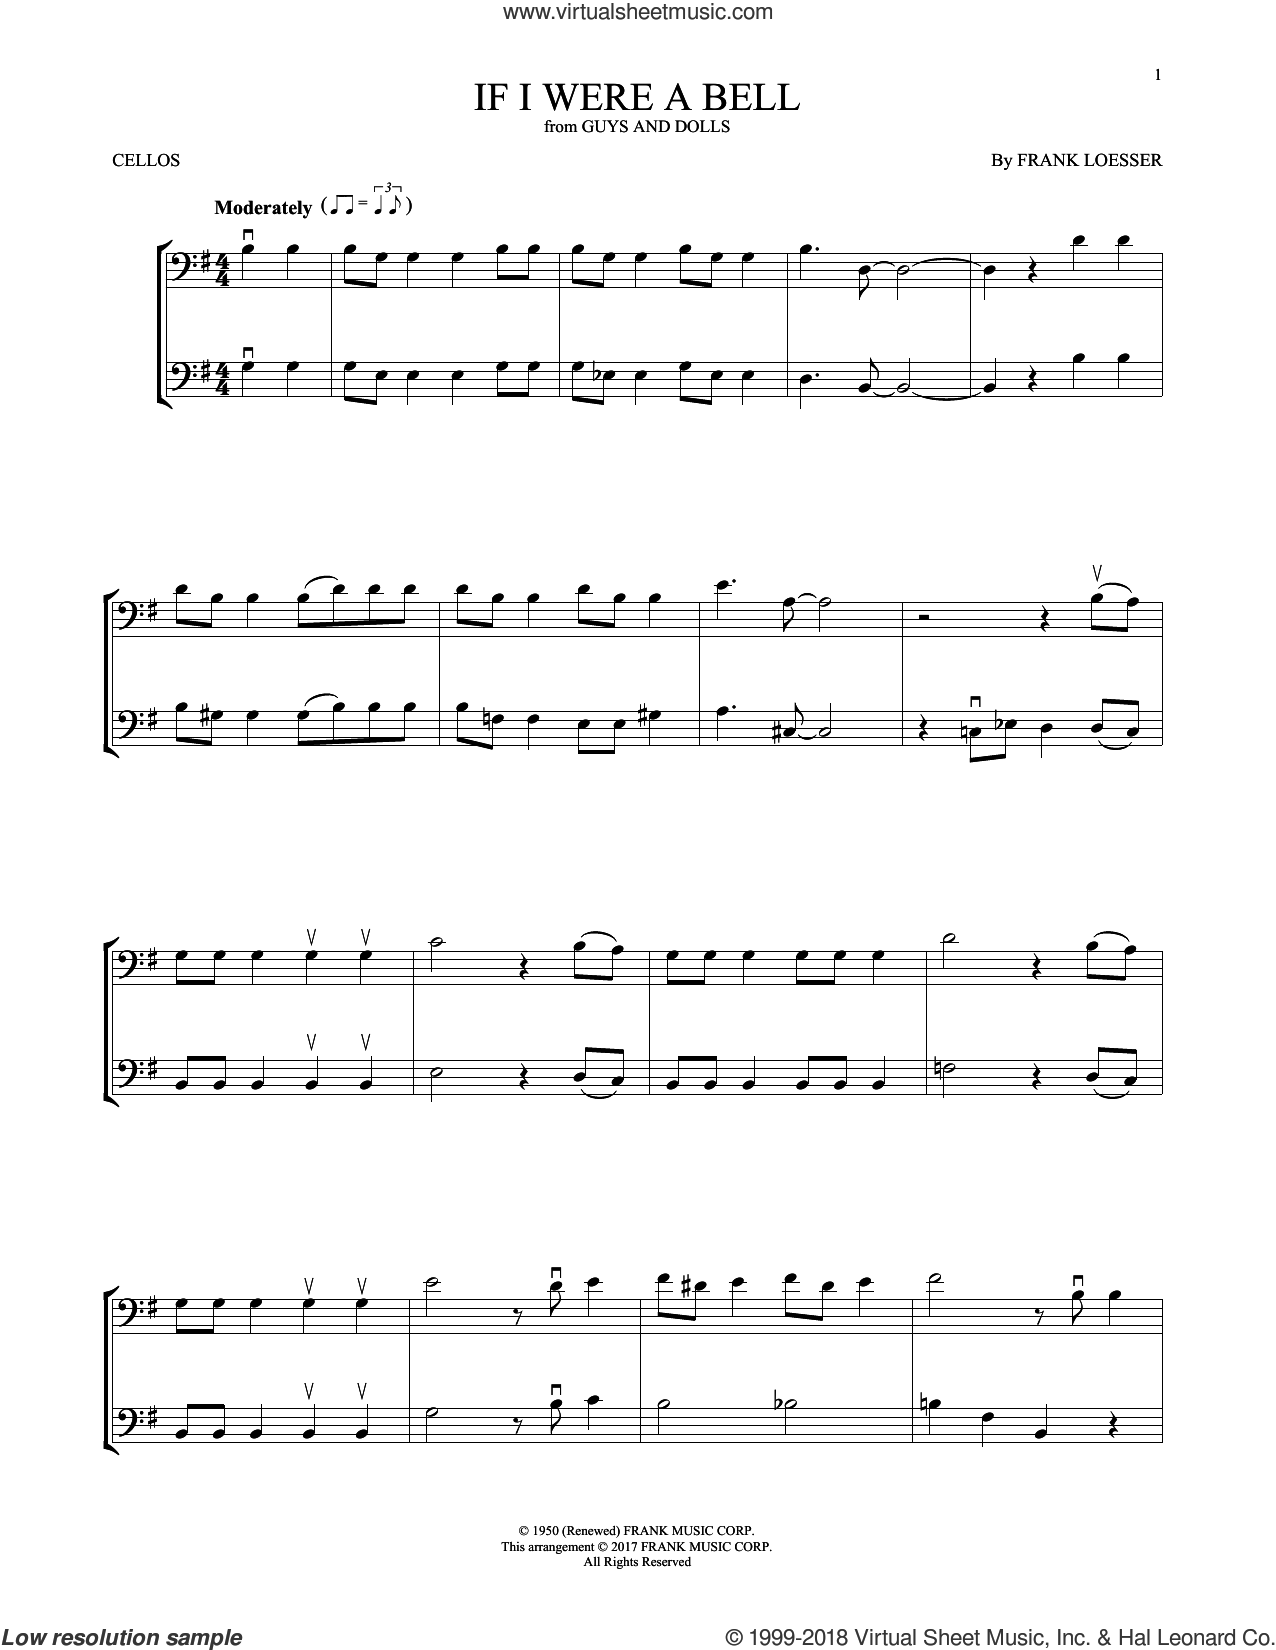 If I Were A Bell sheet music for two cellos (duet, duets) by Frank Loesser, intermediate skill level